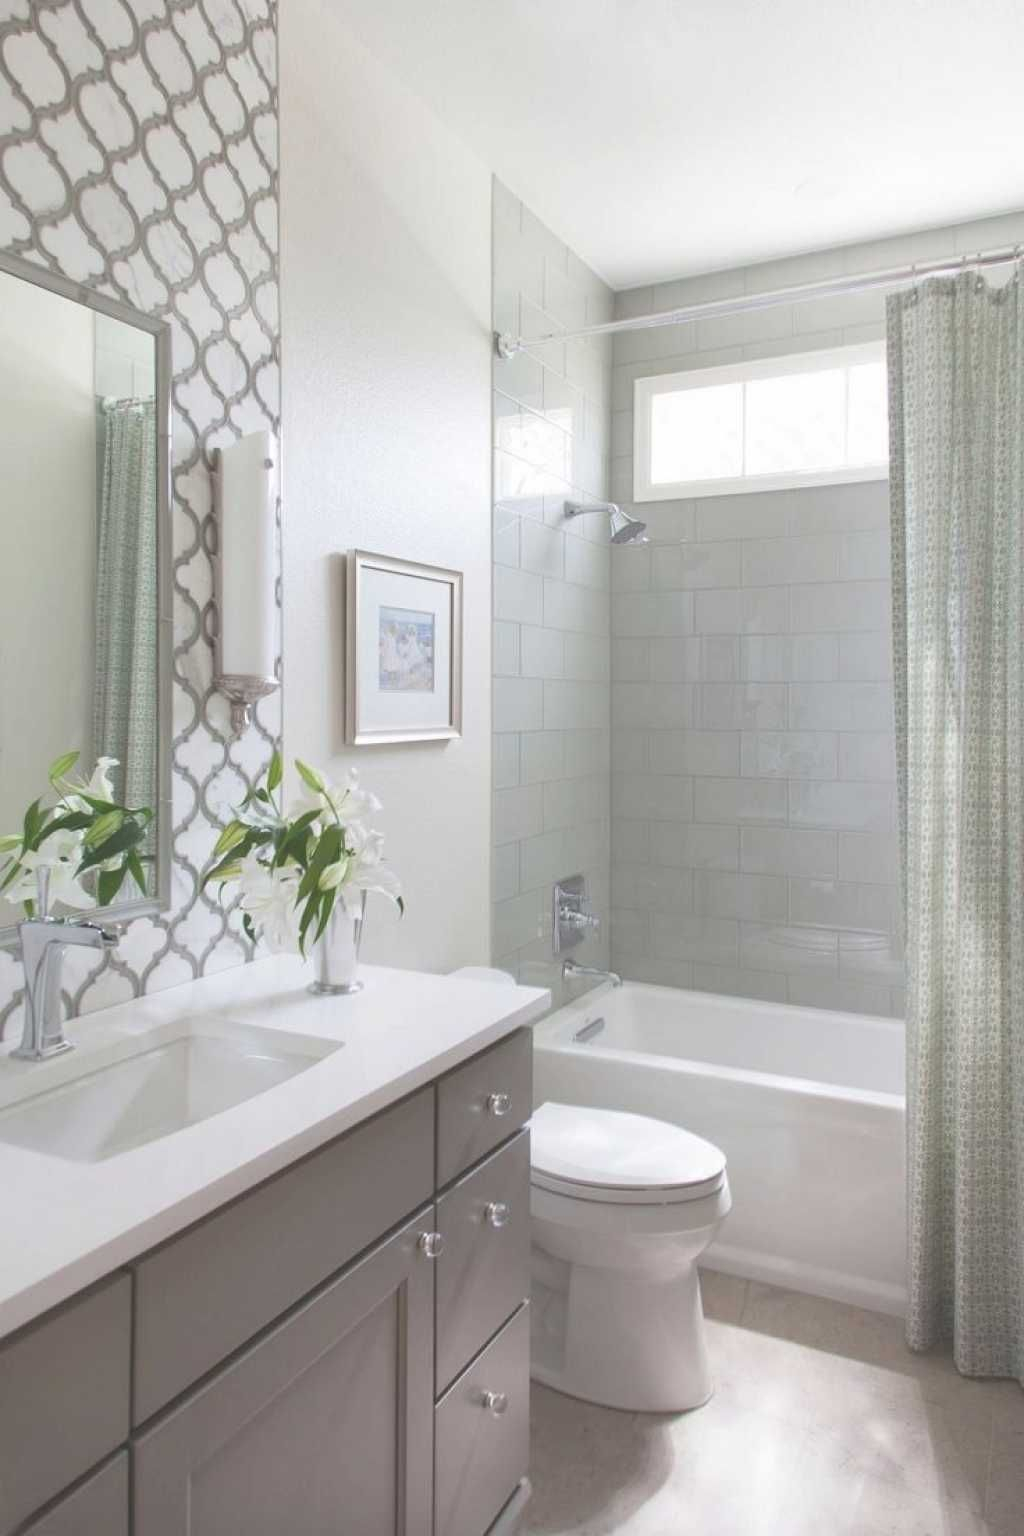 Elite Small Bathroom Tub Shower Combo Remodeling Ideas Http://zoladecor pertaining to Bathroom Remodel Ideas Small